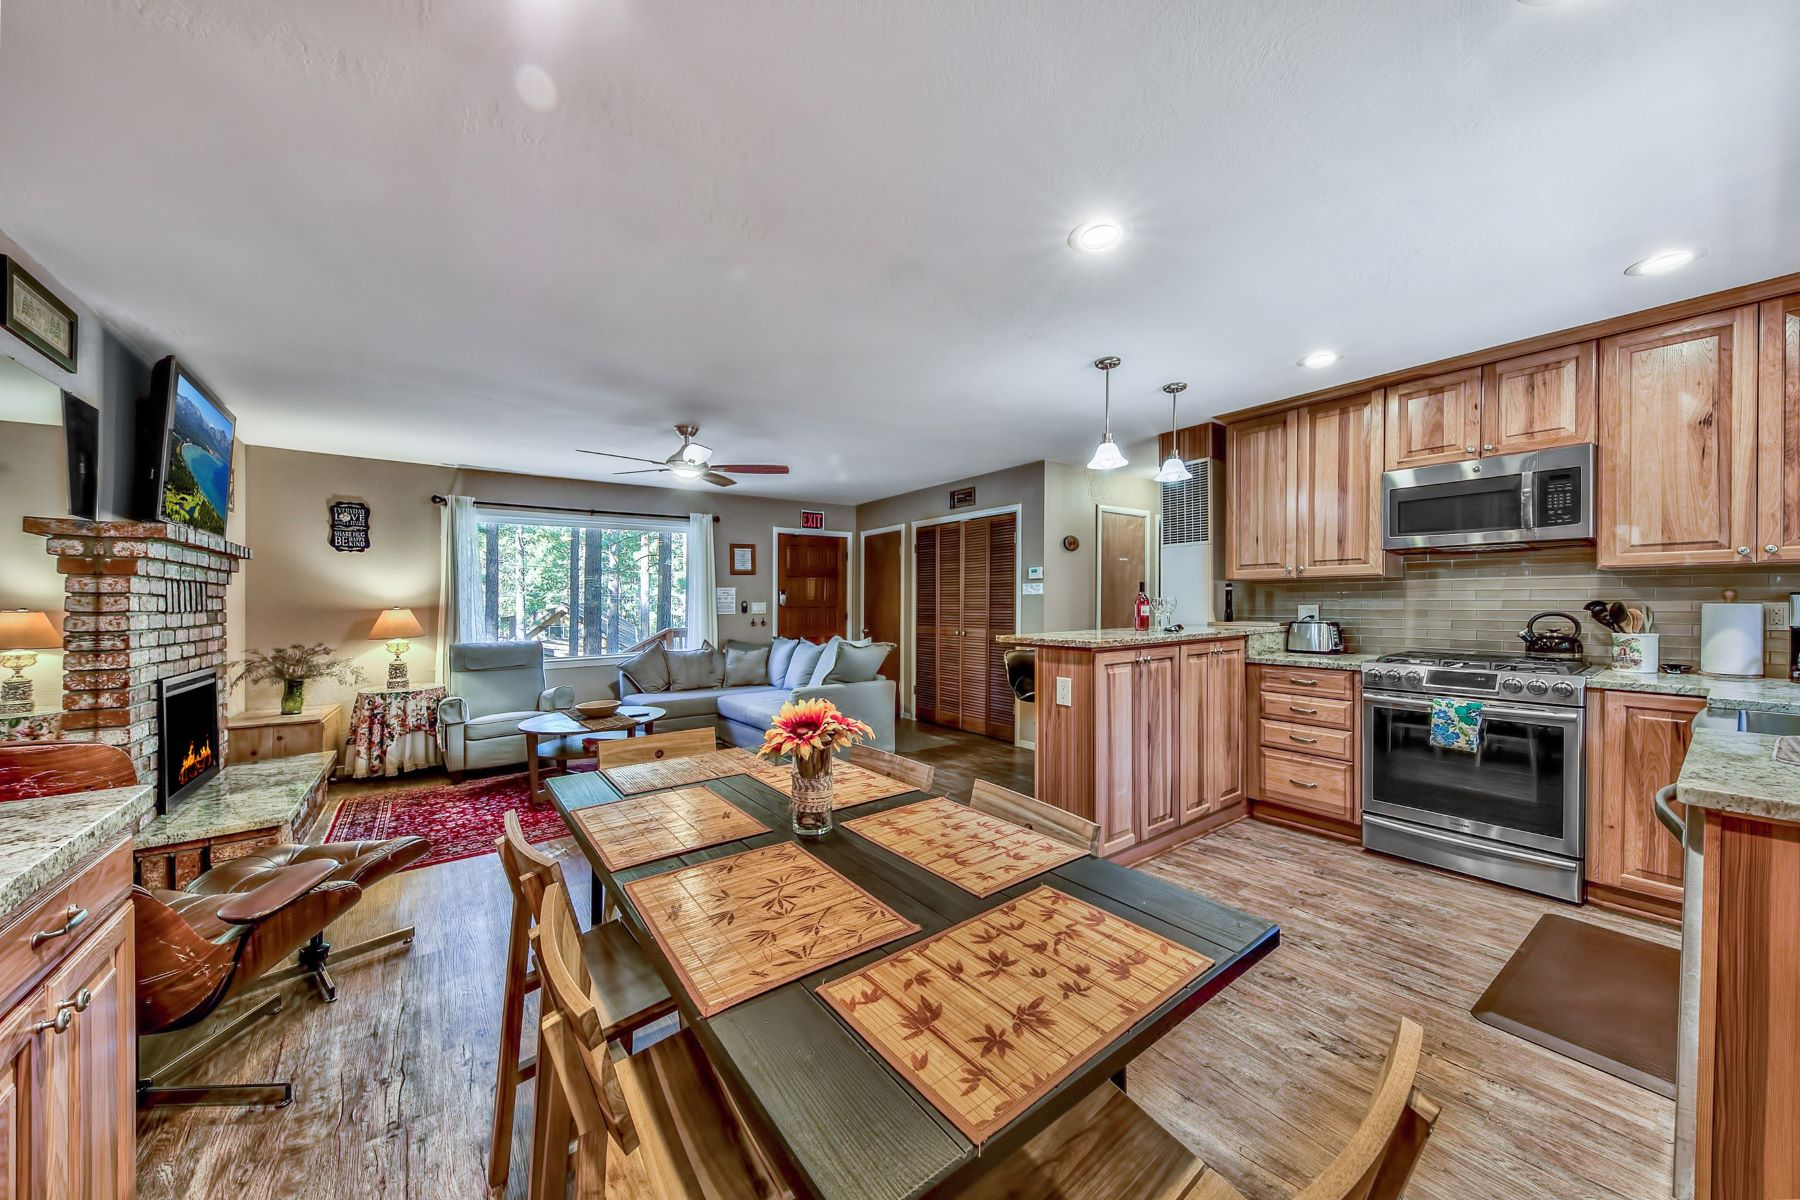 Additional photo for property listing at 1500 Bonita Road, South Lake Tahoe, CA 96150 1500 Bonita Road South Lake Tahoe, California 96150 United States